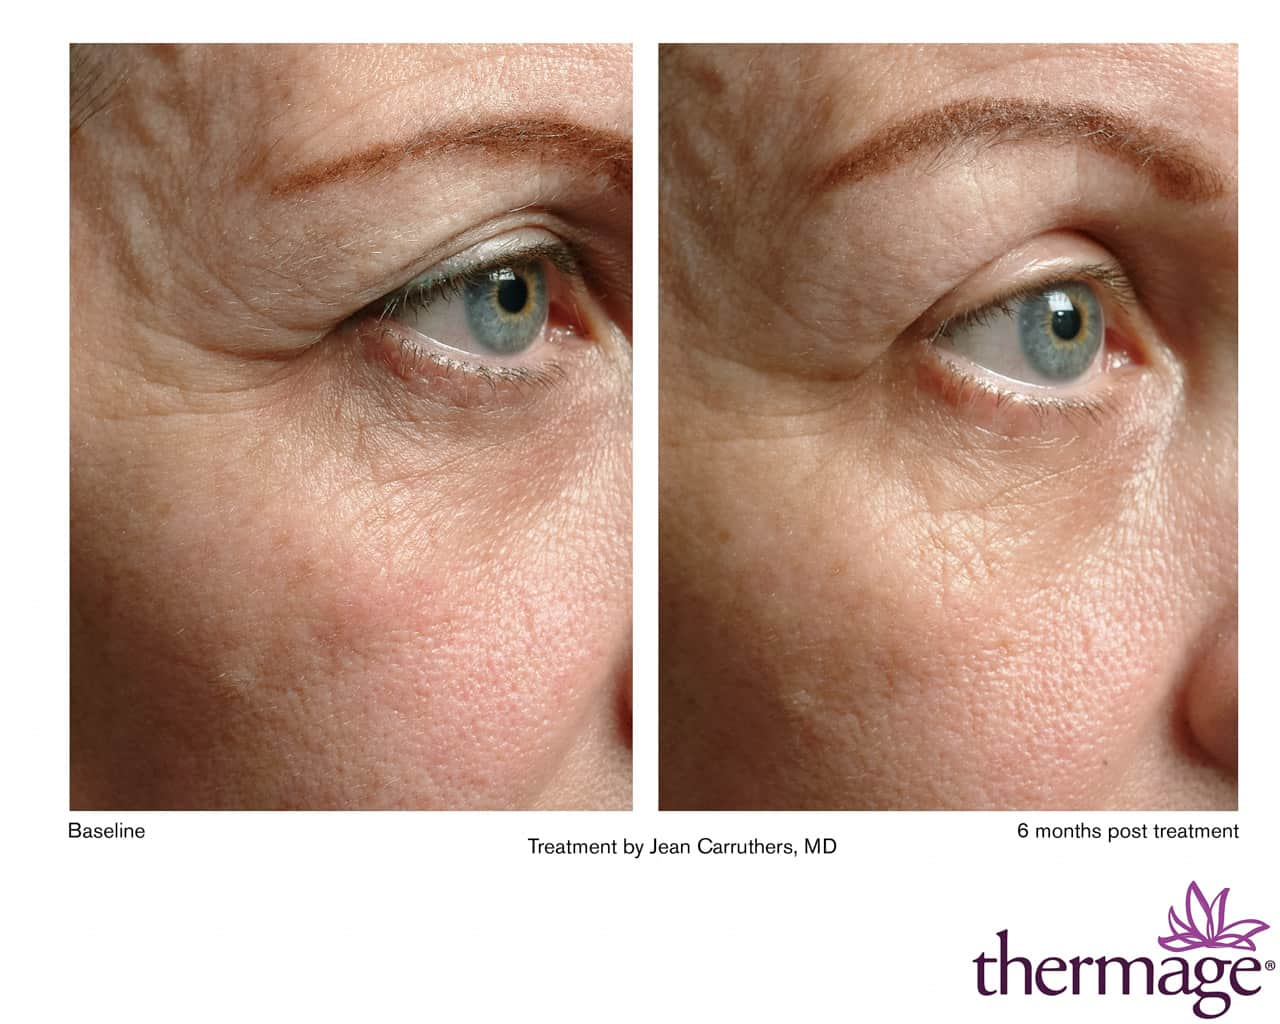 Thermage before after pictures Eyelid lift surgery (blepharoplasty) Before and After